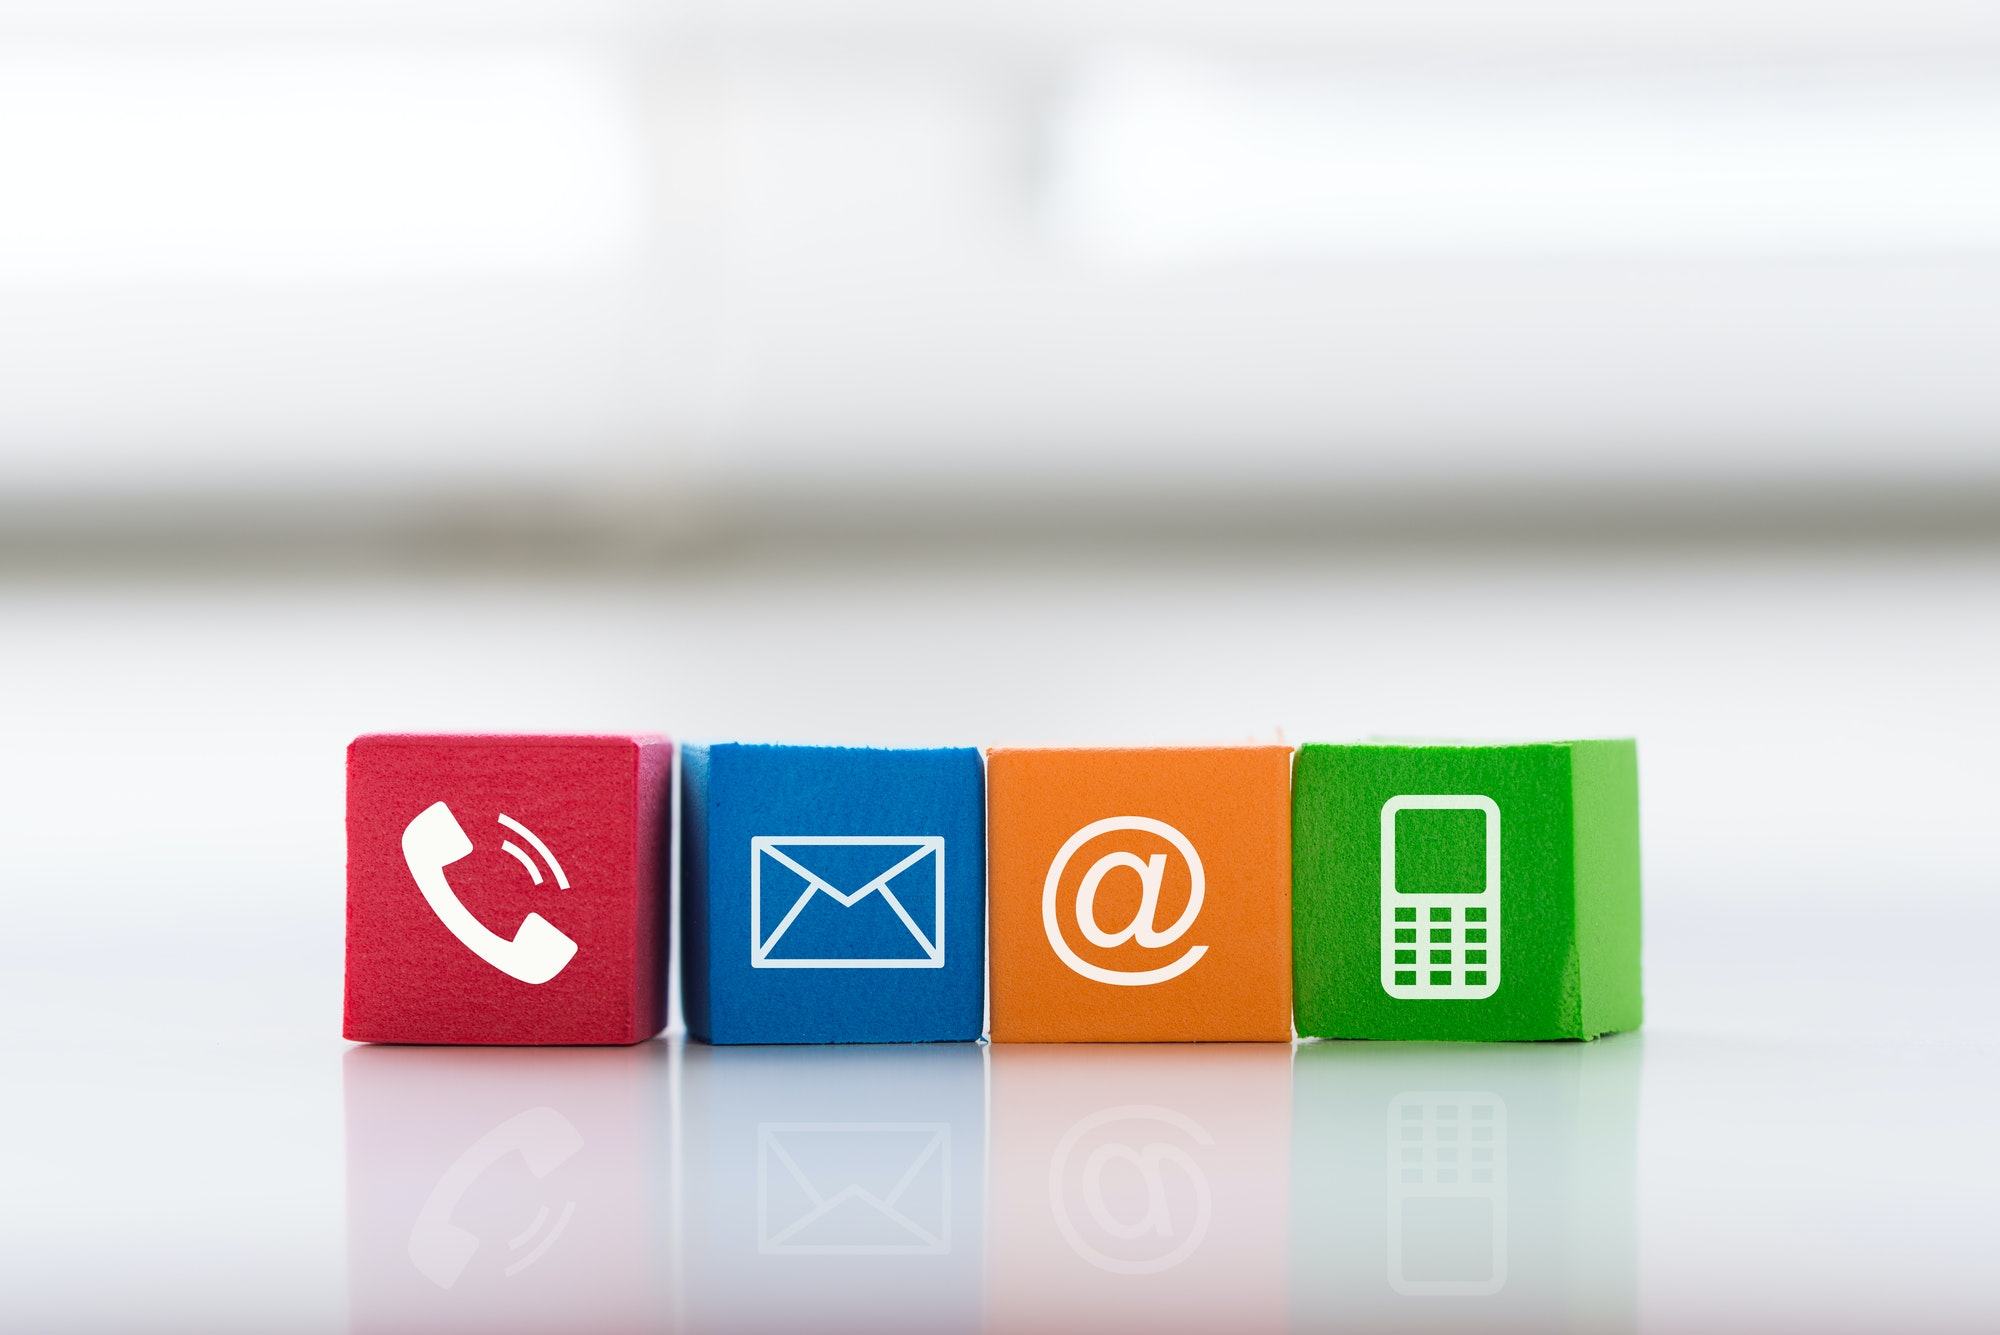 Contact us concept with colorful block symbol telephone, mail, address and mobile phone